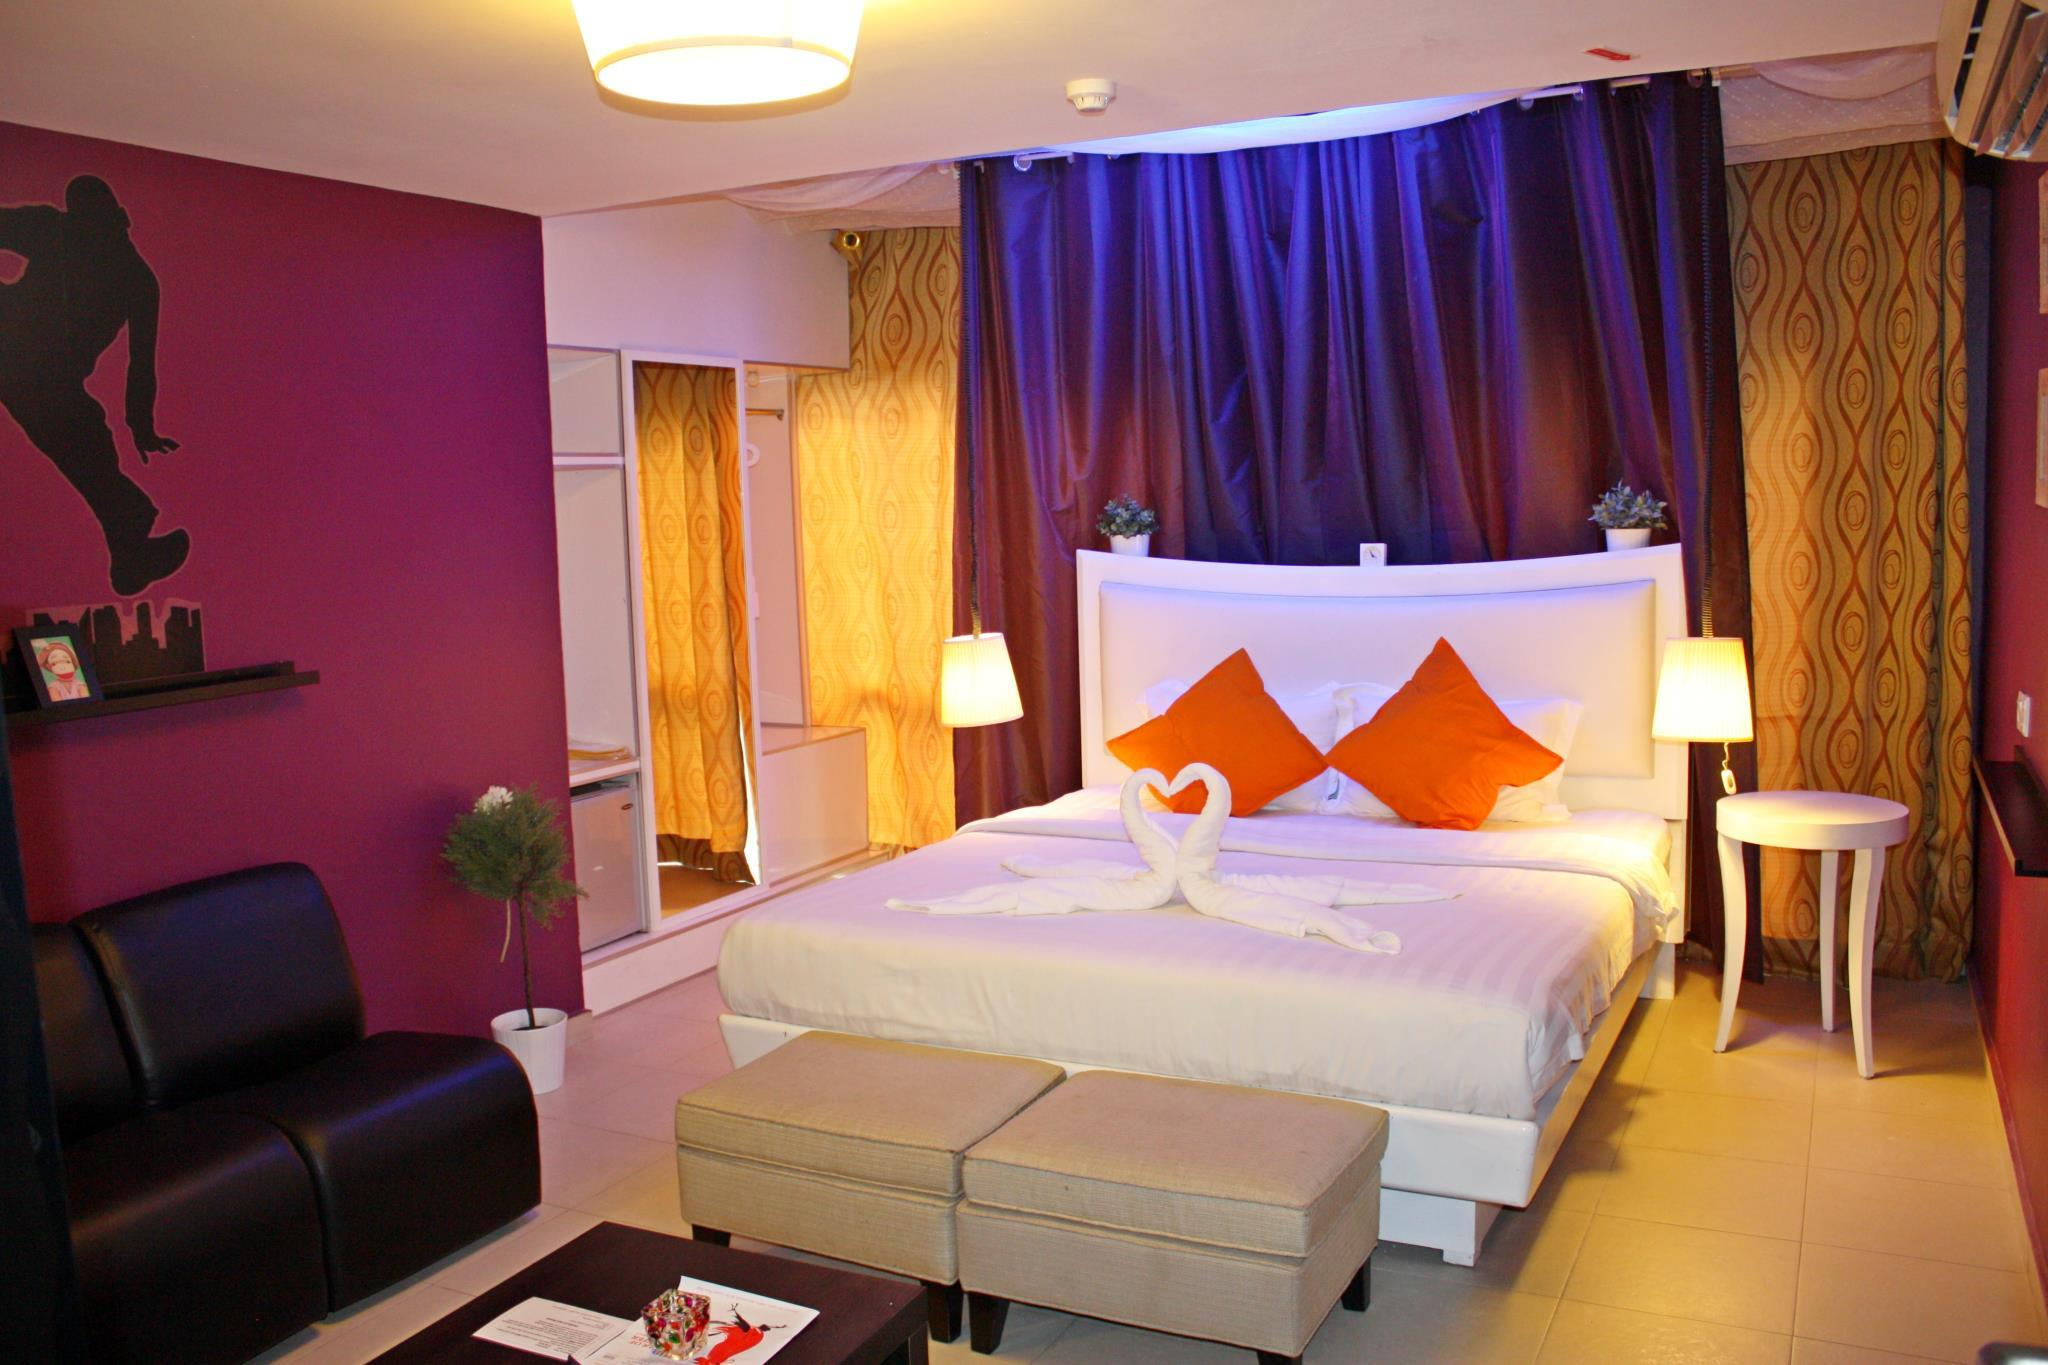 Hote123 - Hotel in Kuala Lumpur - Room Deals, Photos & Reviews